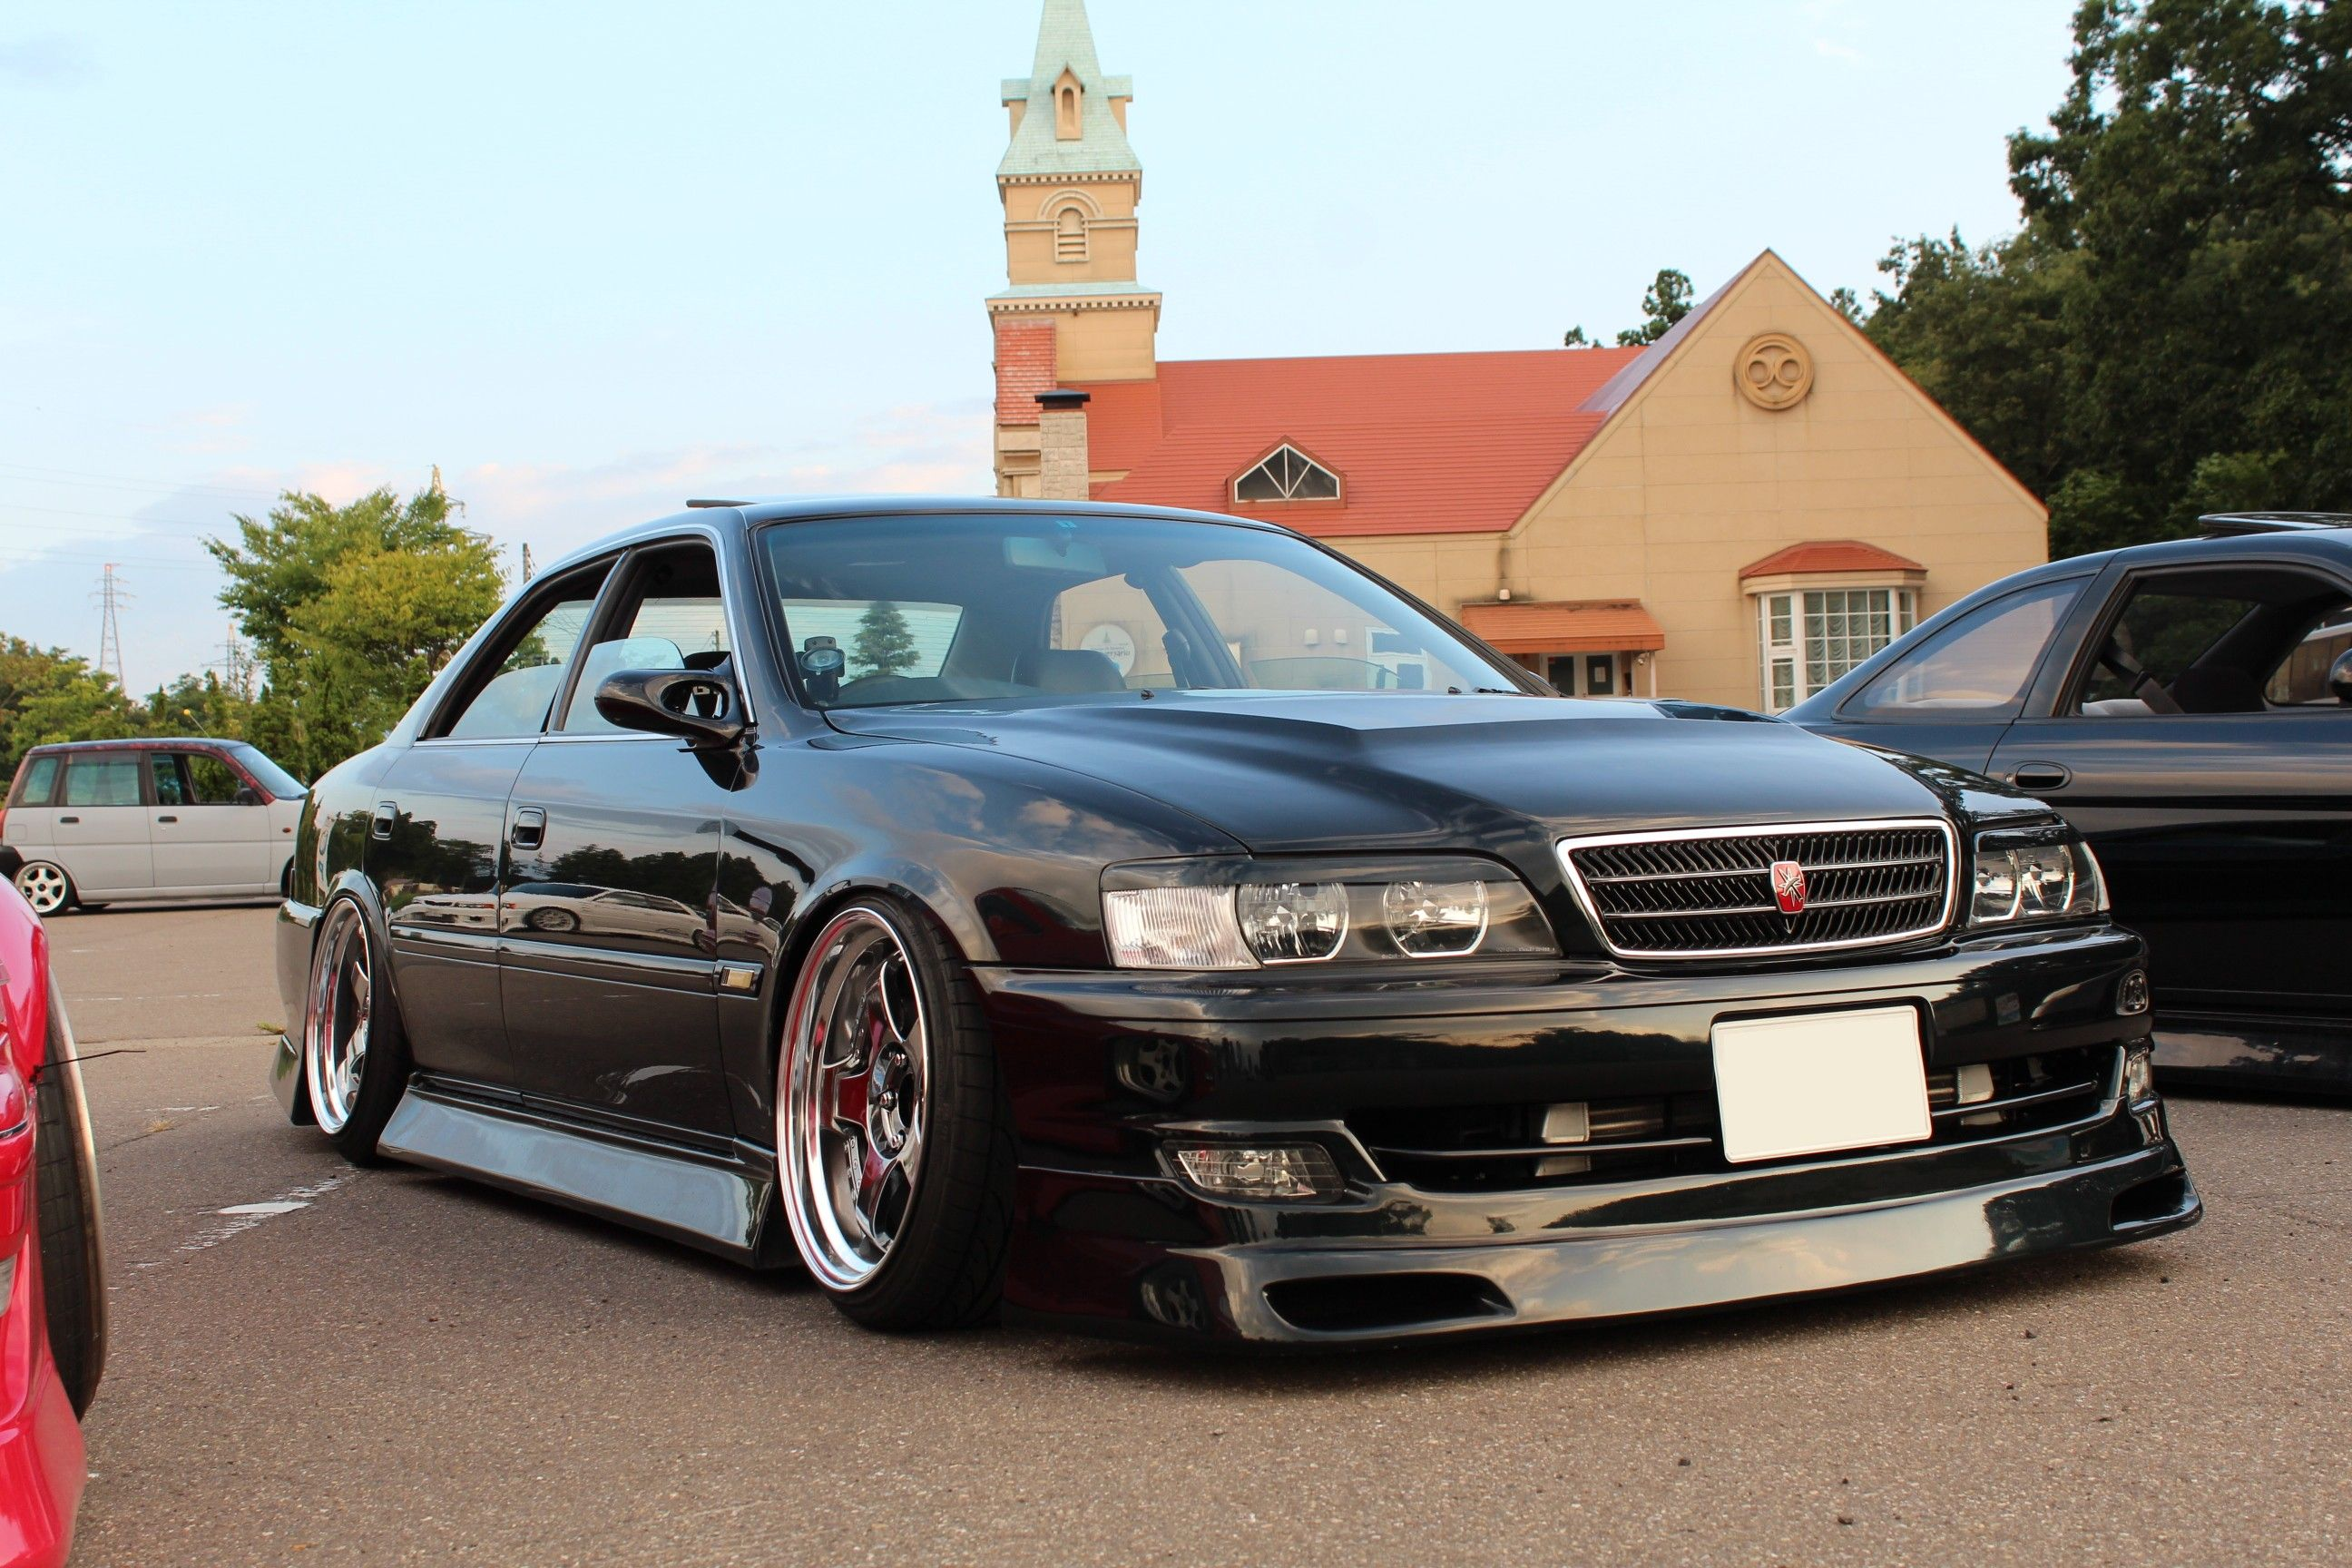 Genial TOYOTA CHASER / JZX100